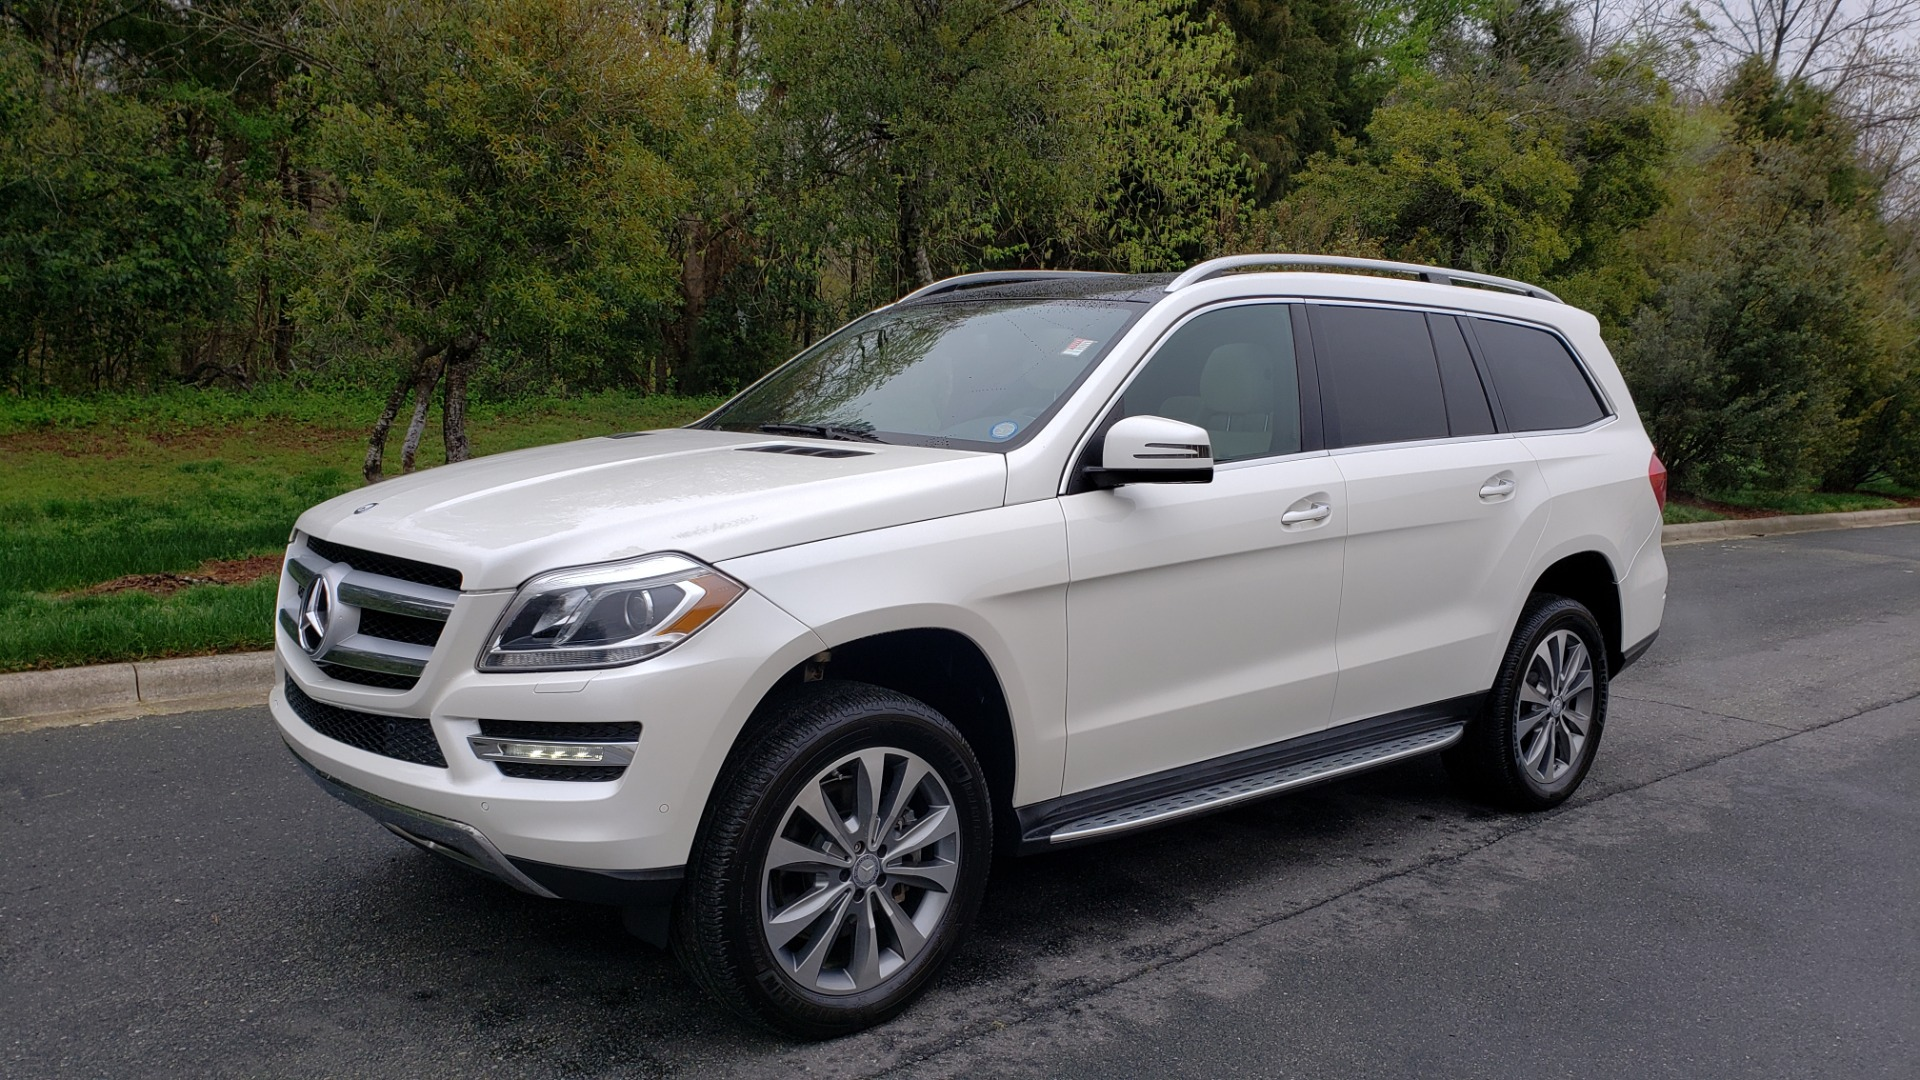 Used 2015 Mercedes-Benz GL-Class GL 450 4MATIC PREMIUM / NAV / PANO-ROOF / LANE TRACK / PARK ASST for sale Sold at Formula Imports in Charlotte NC 28227 1